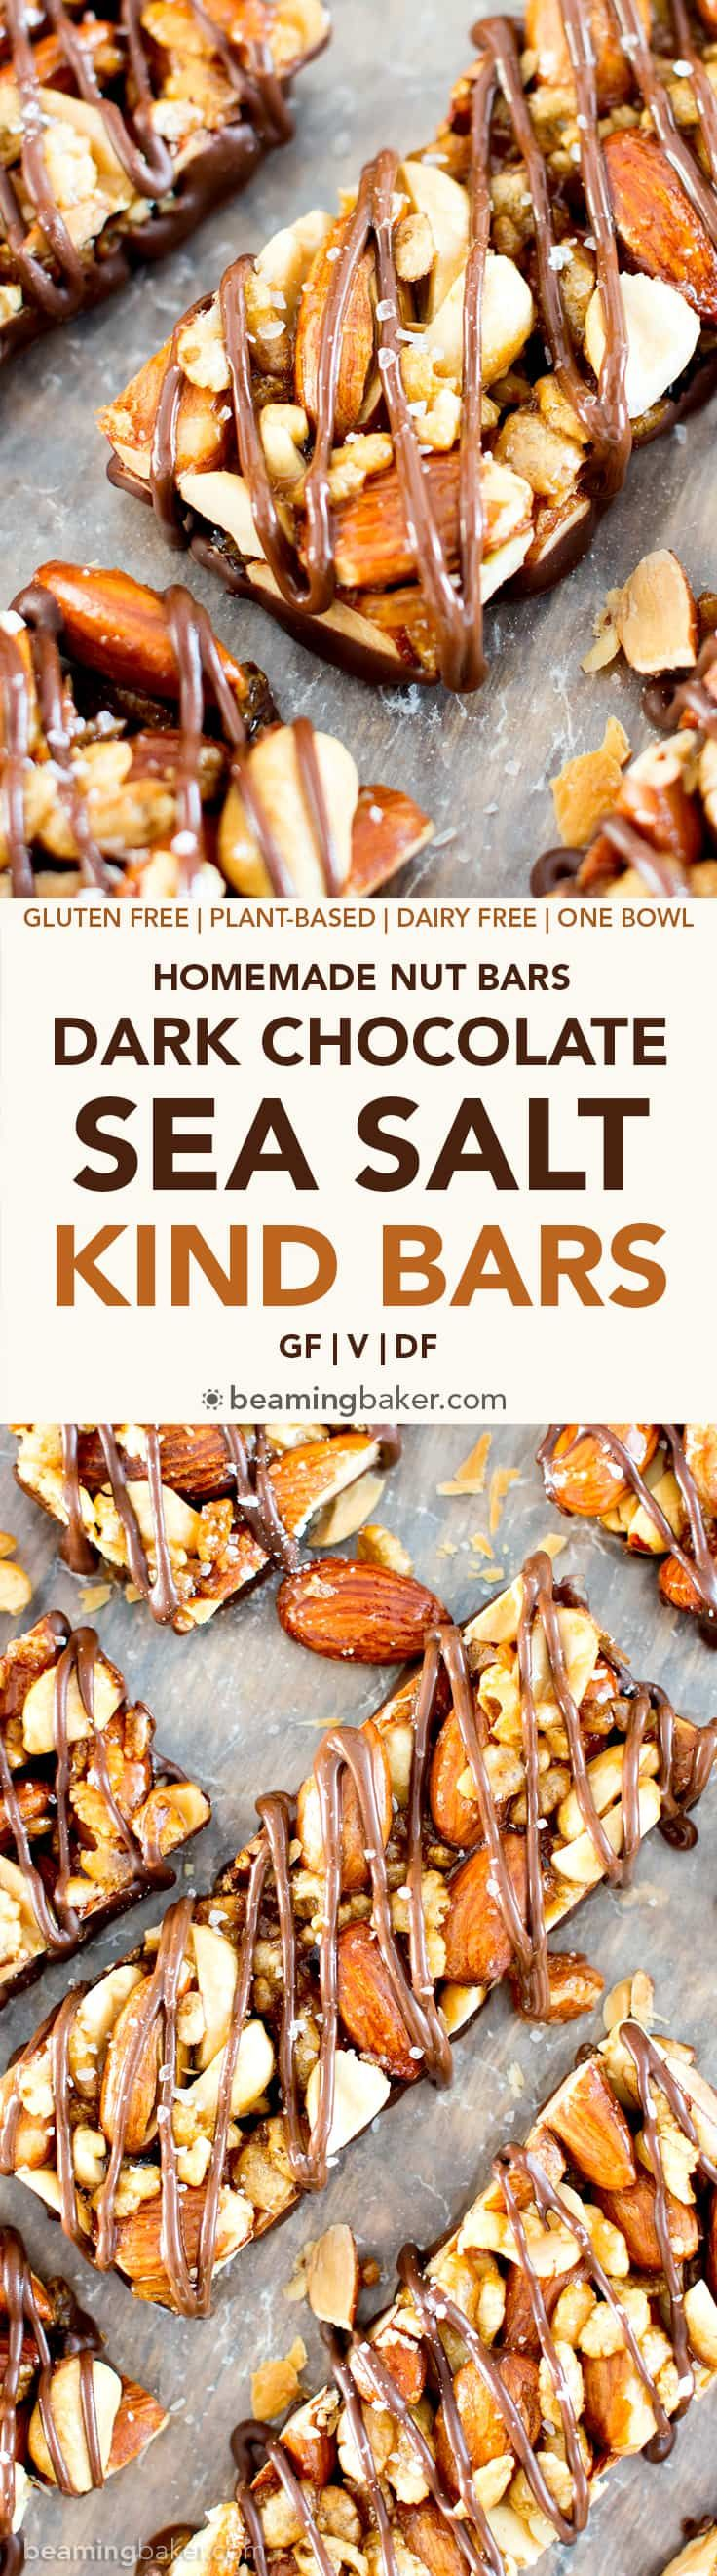 Homemade Dark Chocolate Sea Salt KIND Nut Bars (V, GF, DF): a protein-rich recipe for homemade KIND bars drizzled in dark chocolate and sprinkled with sea salt. BeamingBaker.com